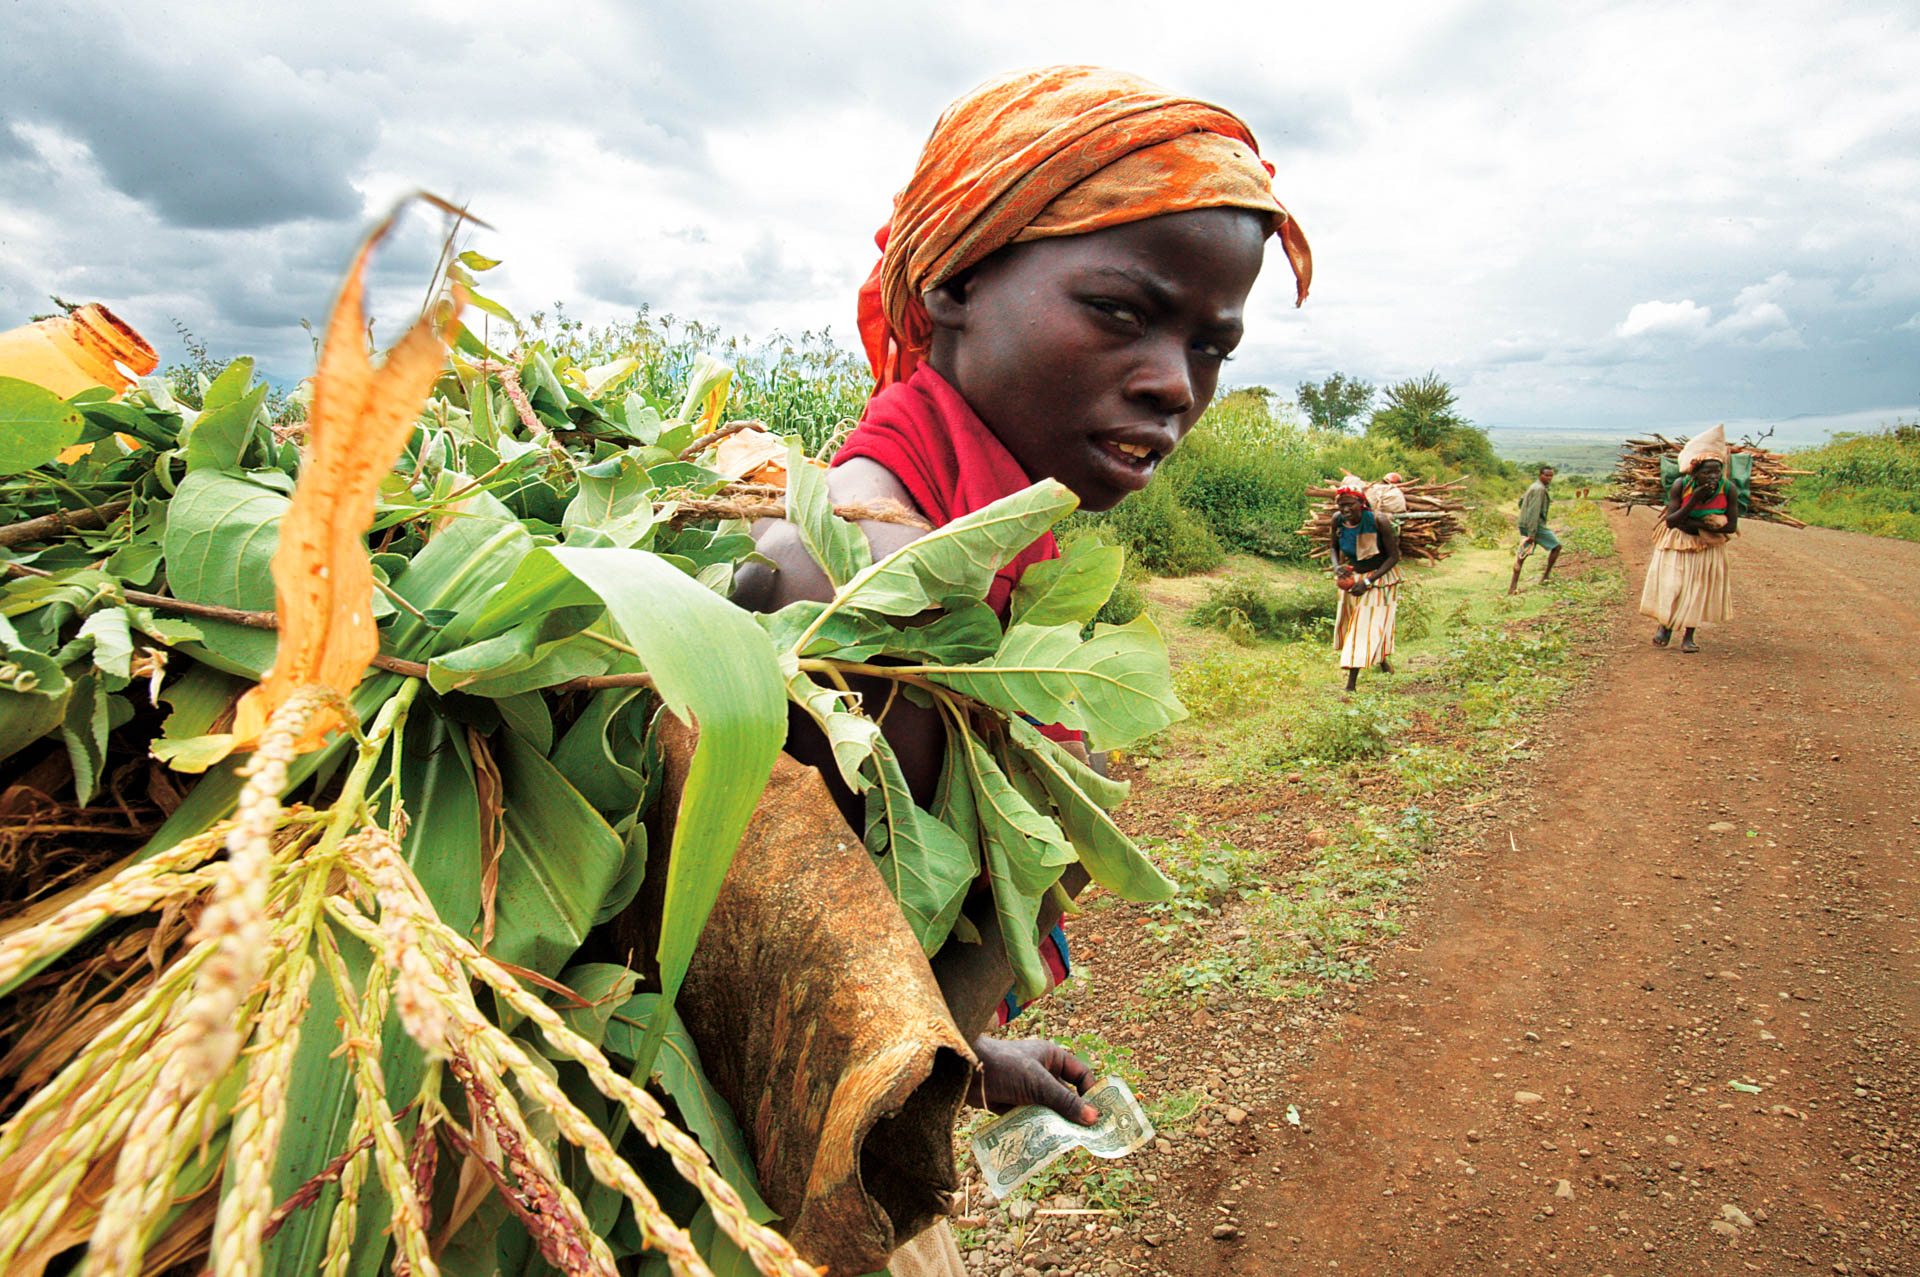 Fatigued by her heavy load, a girl stops to rest on the road leading to the market.